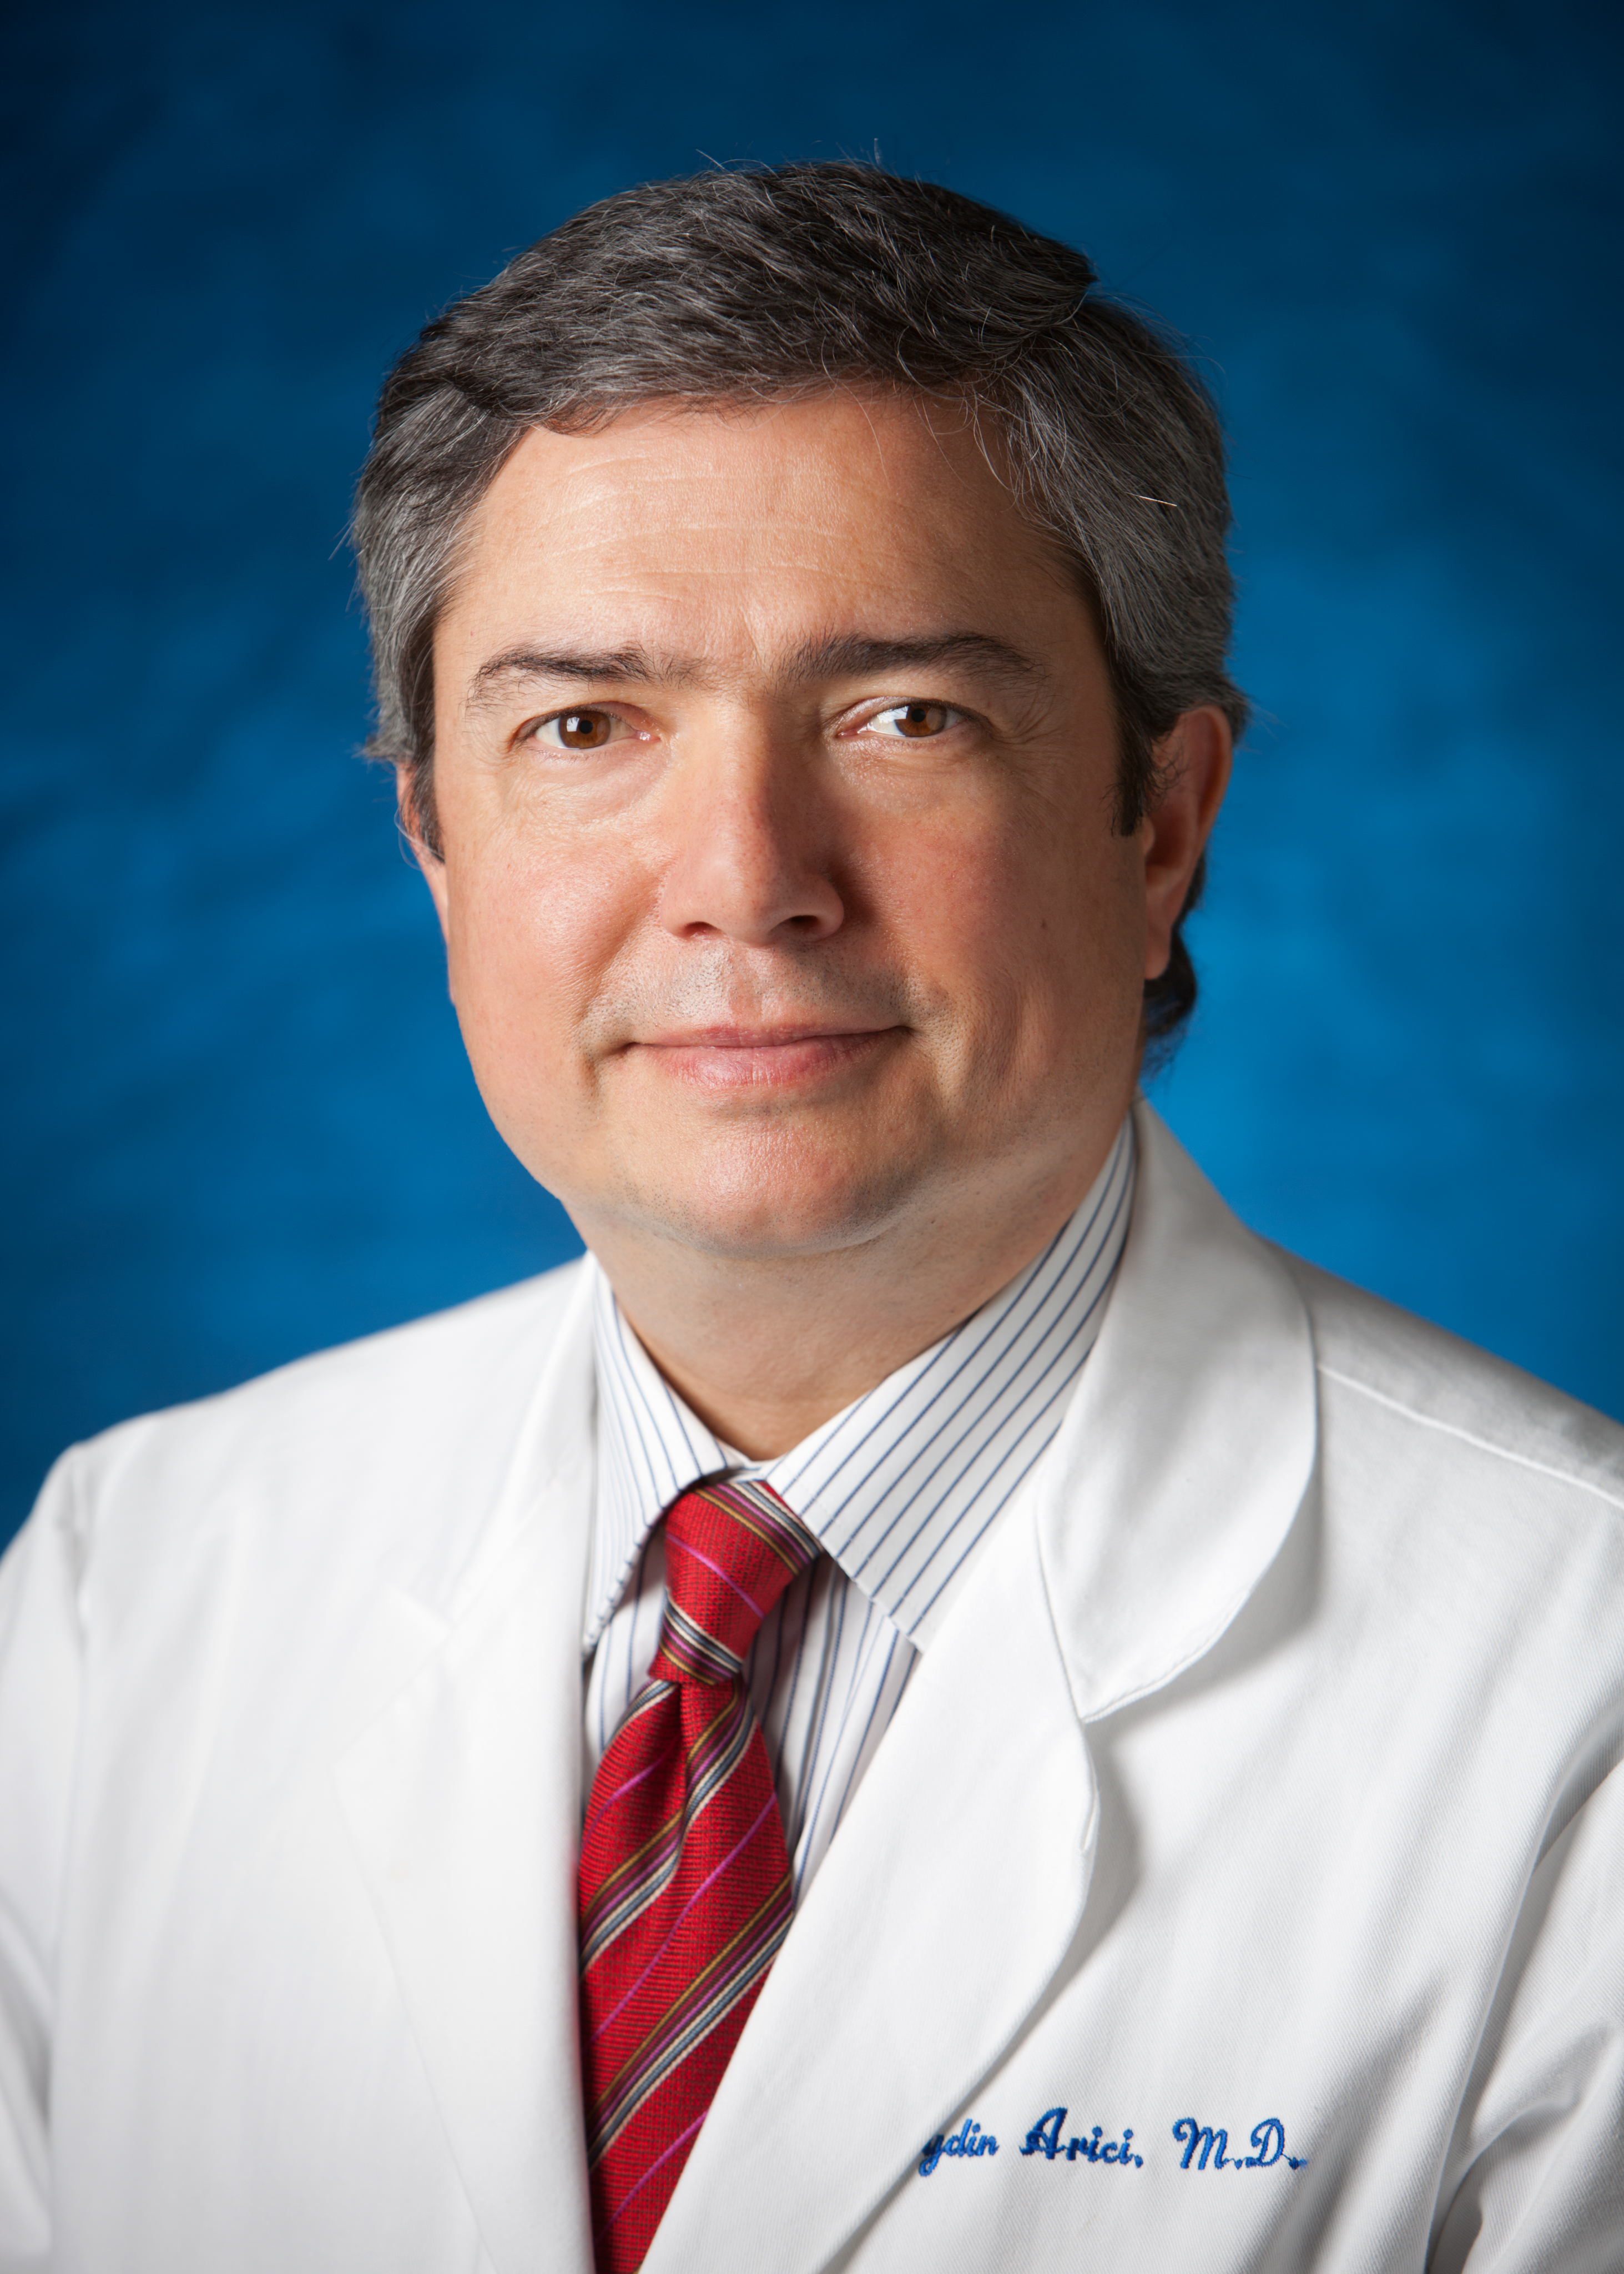 Aydin Arici, MD > Obstetrics, Gynecology & Reproductive Sciences